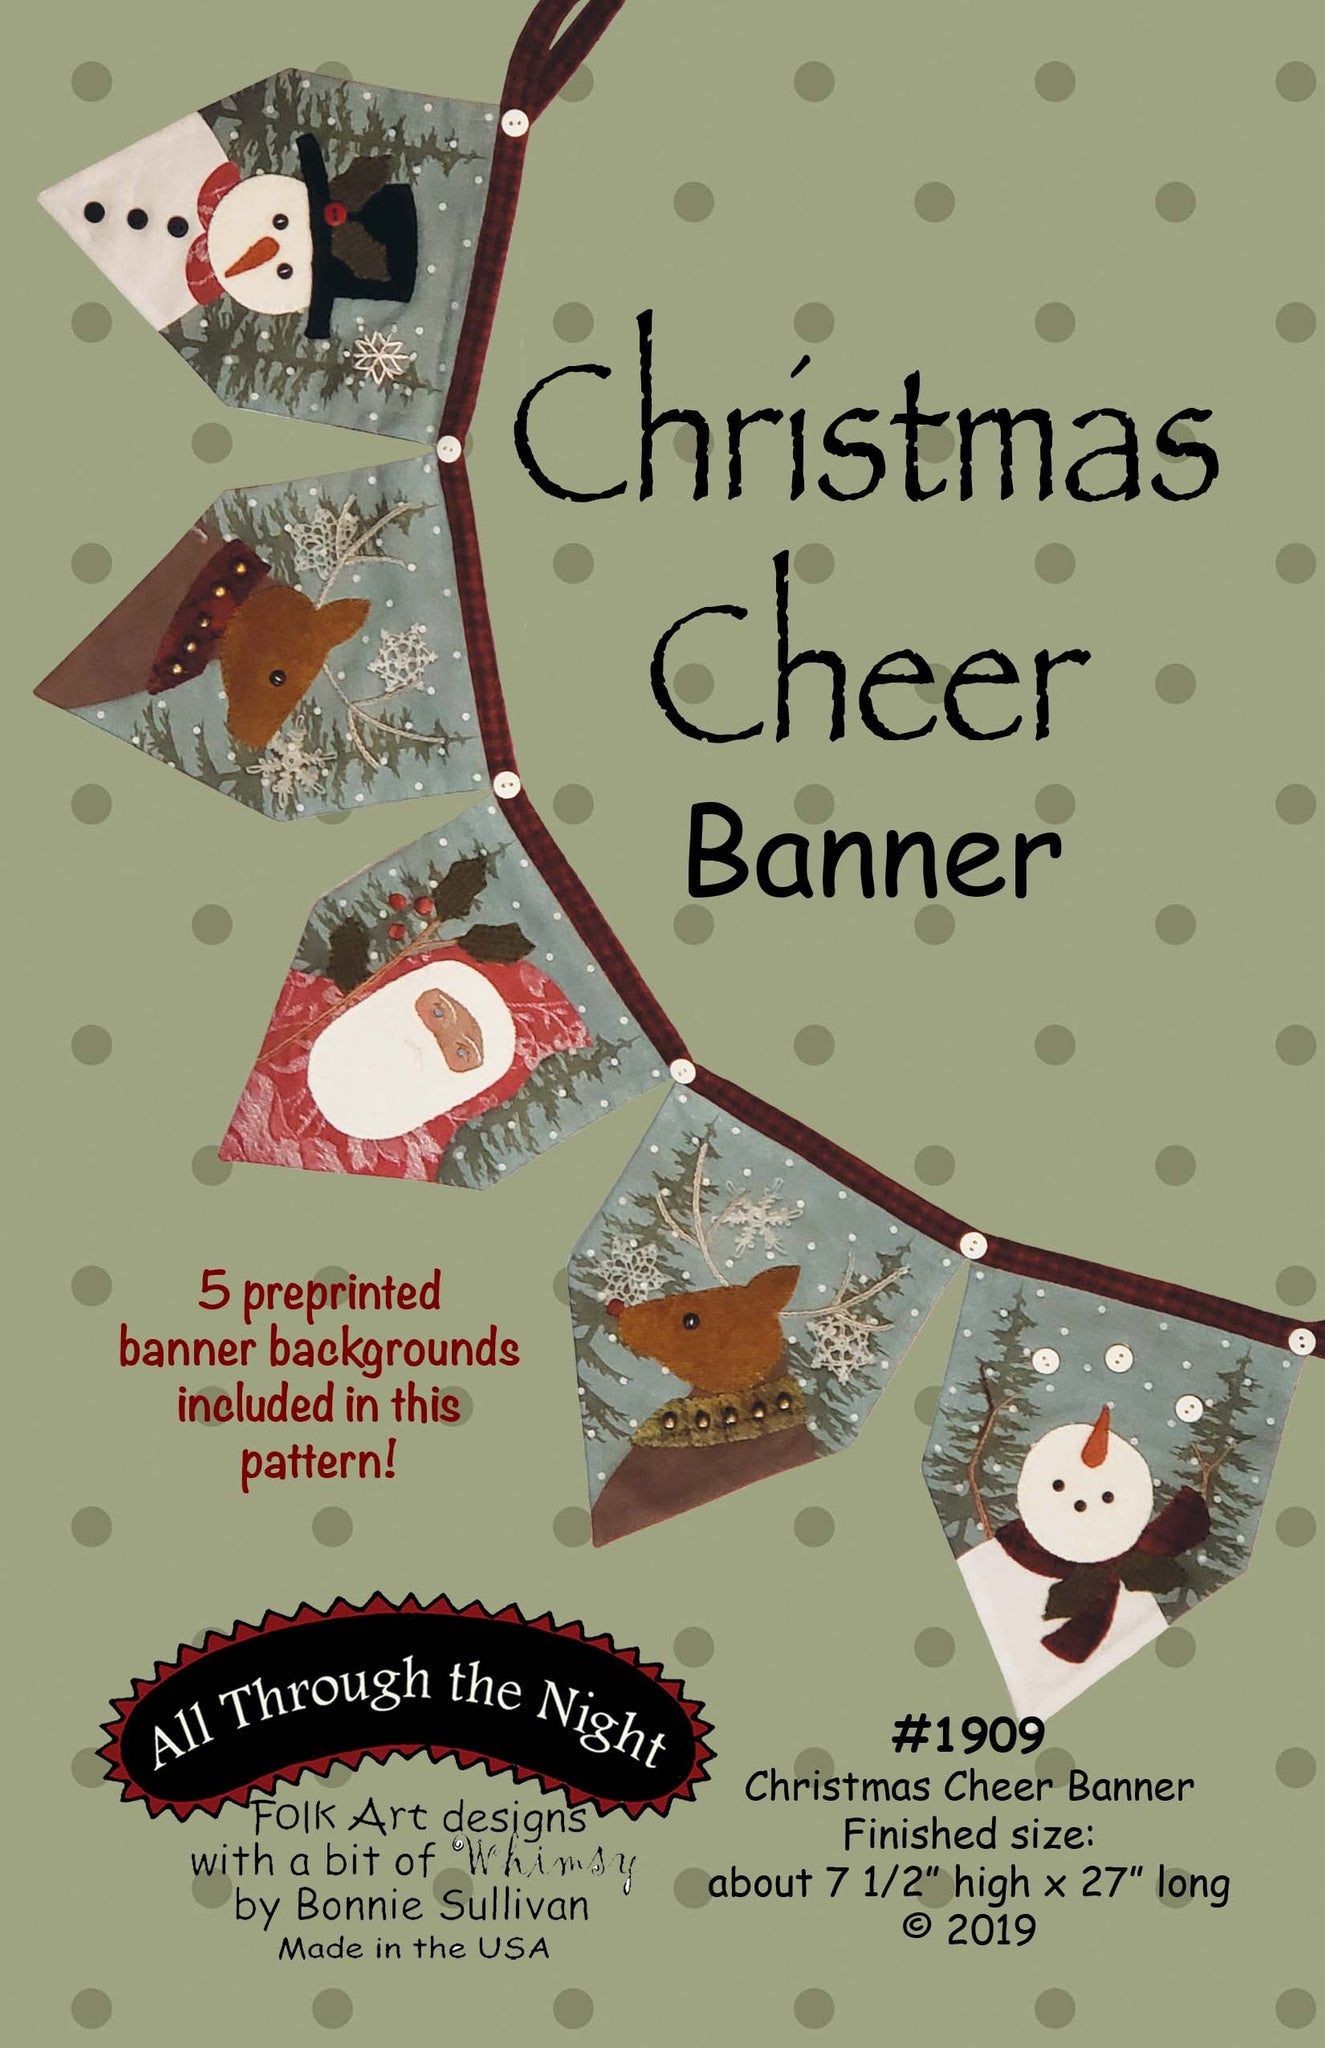 K1909 - Christmas Cheer Banner Kit